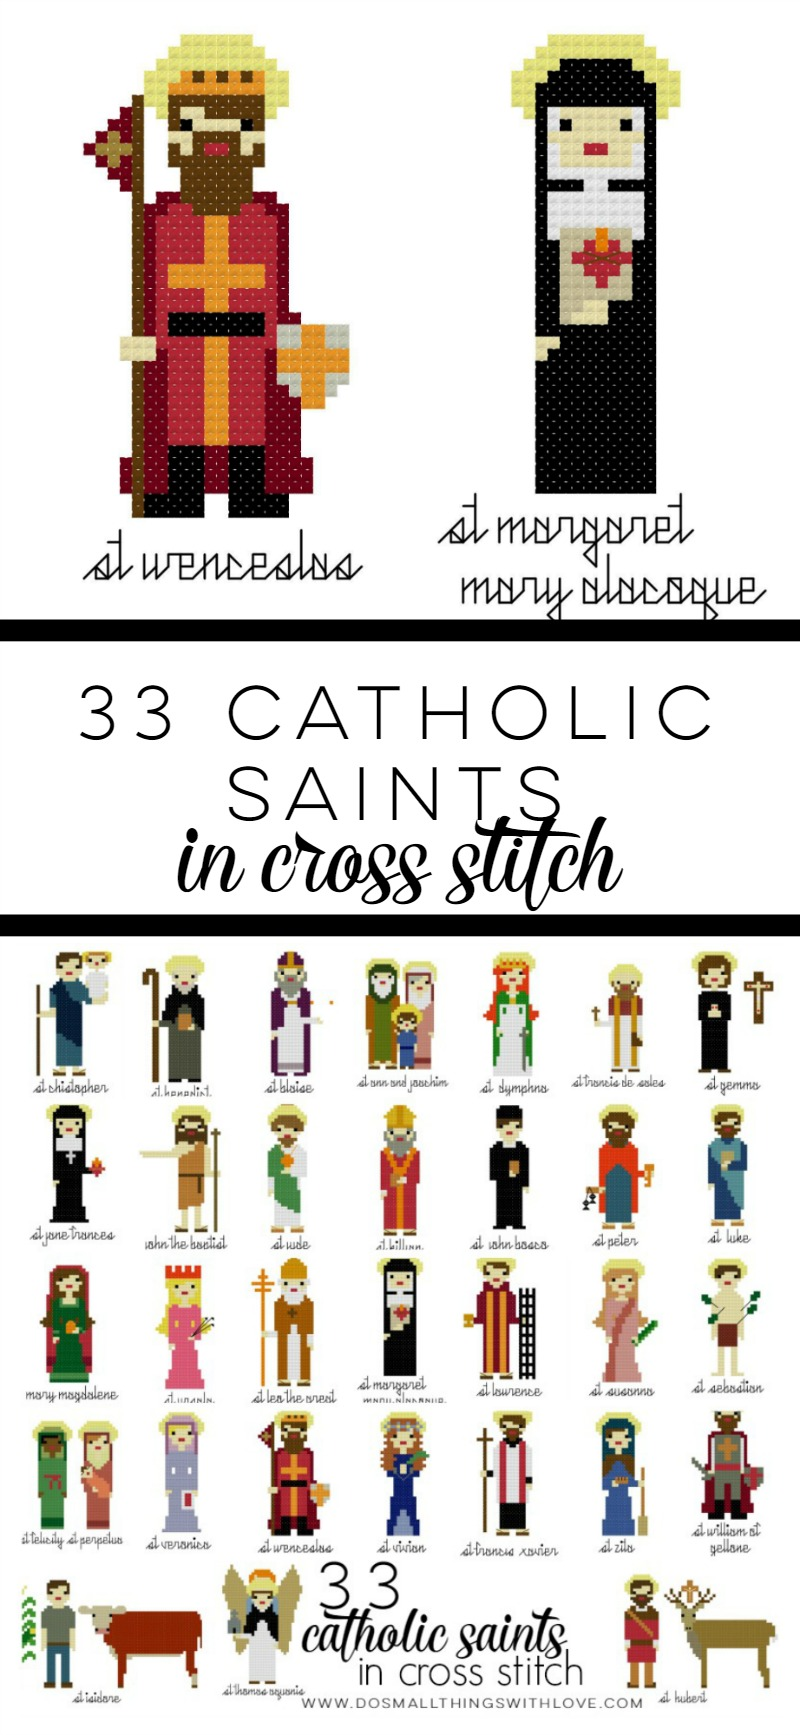 33 Catholic Saint Cross Stitch Patterns